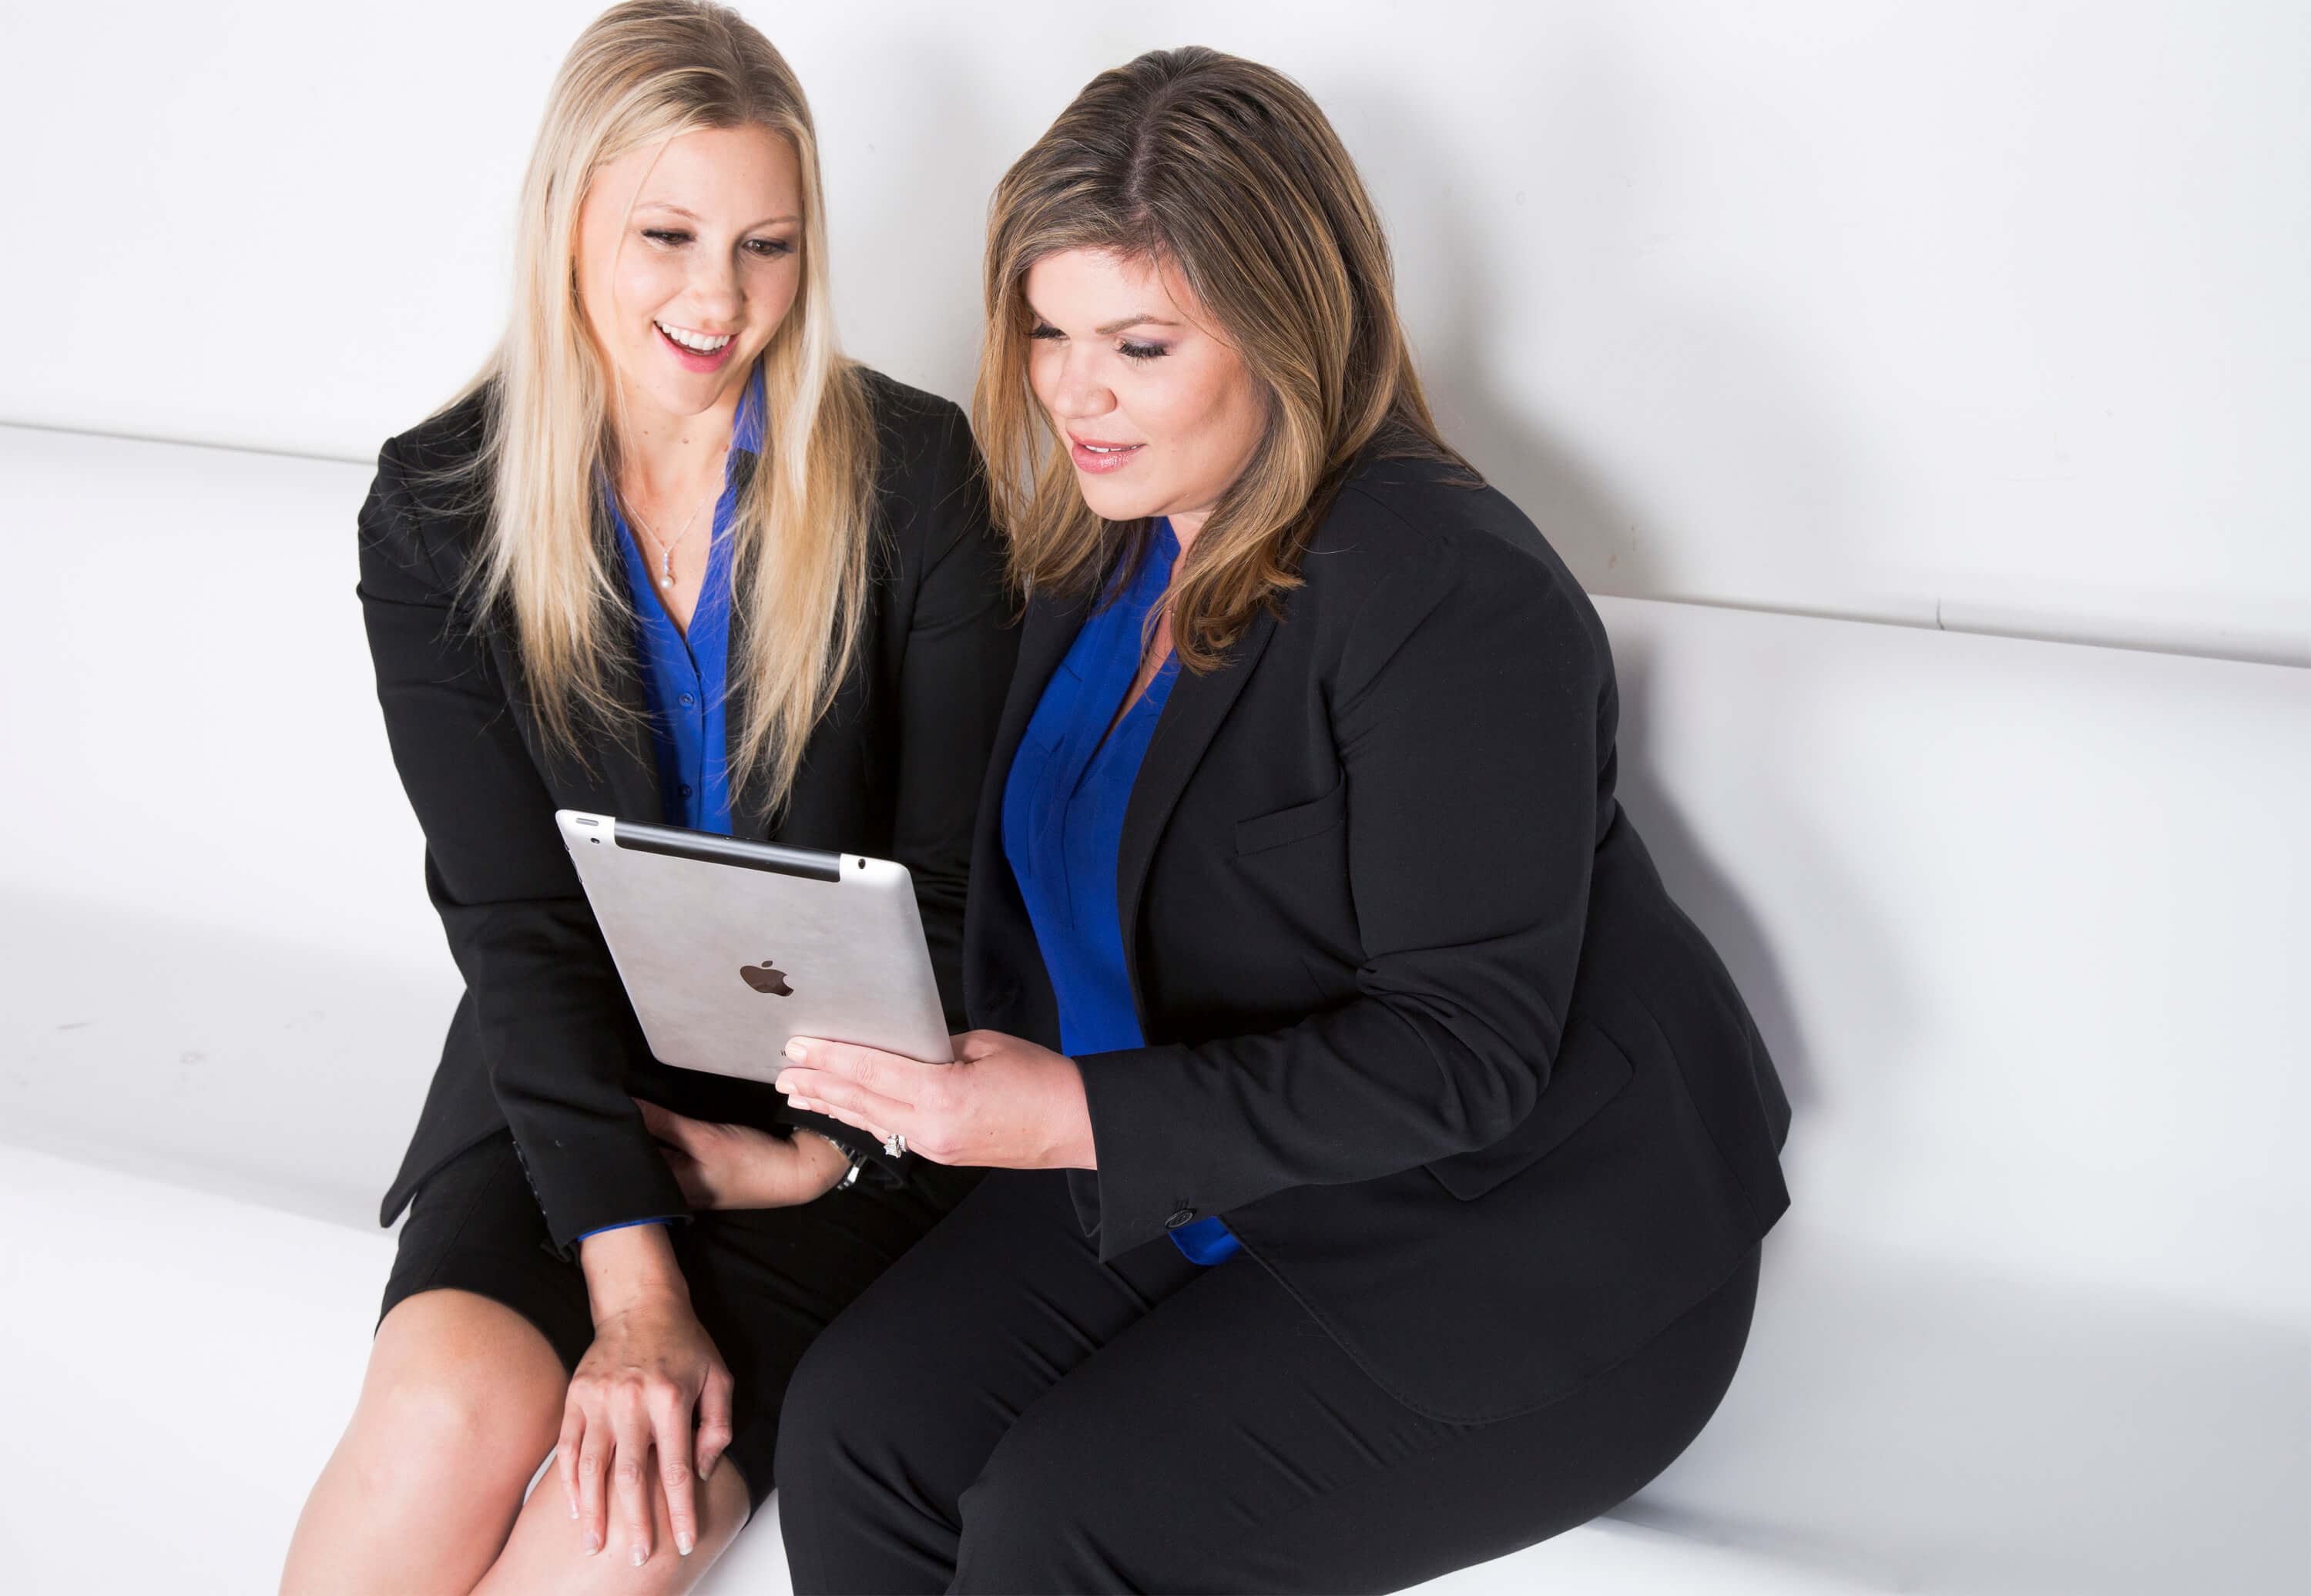 Cindy Hackler and Michelle Jorden sitting at an employment law firm defending businesses